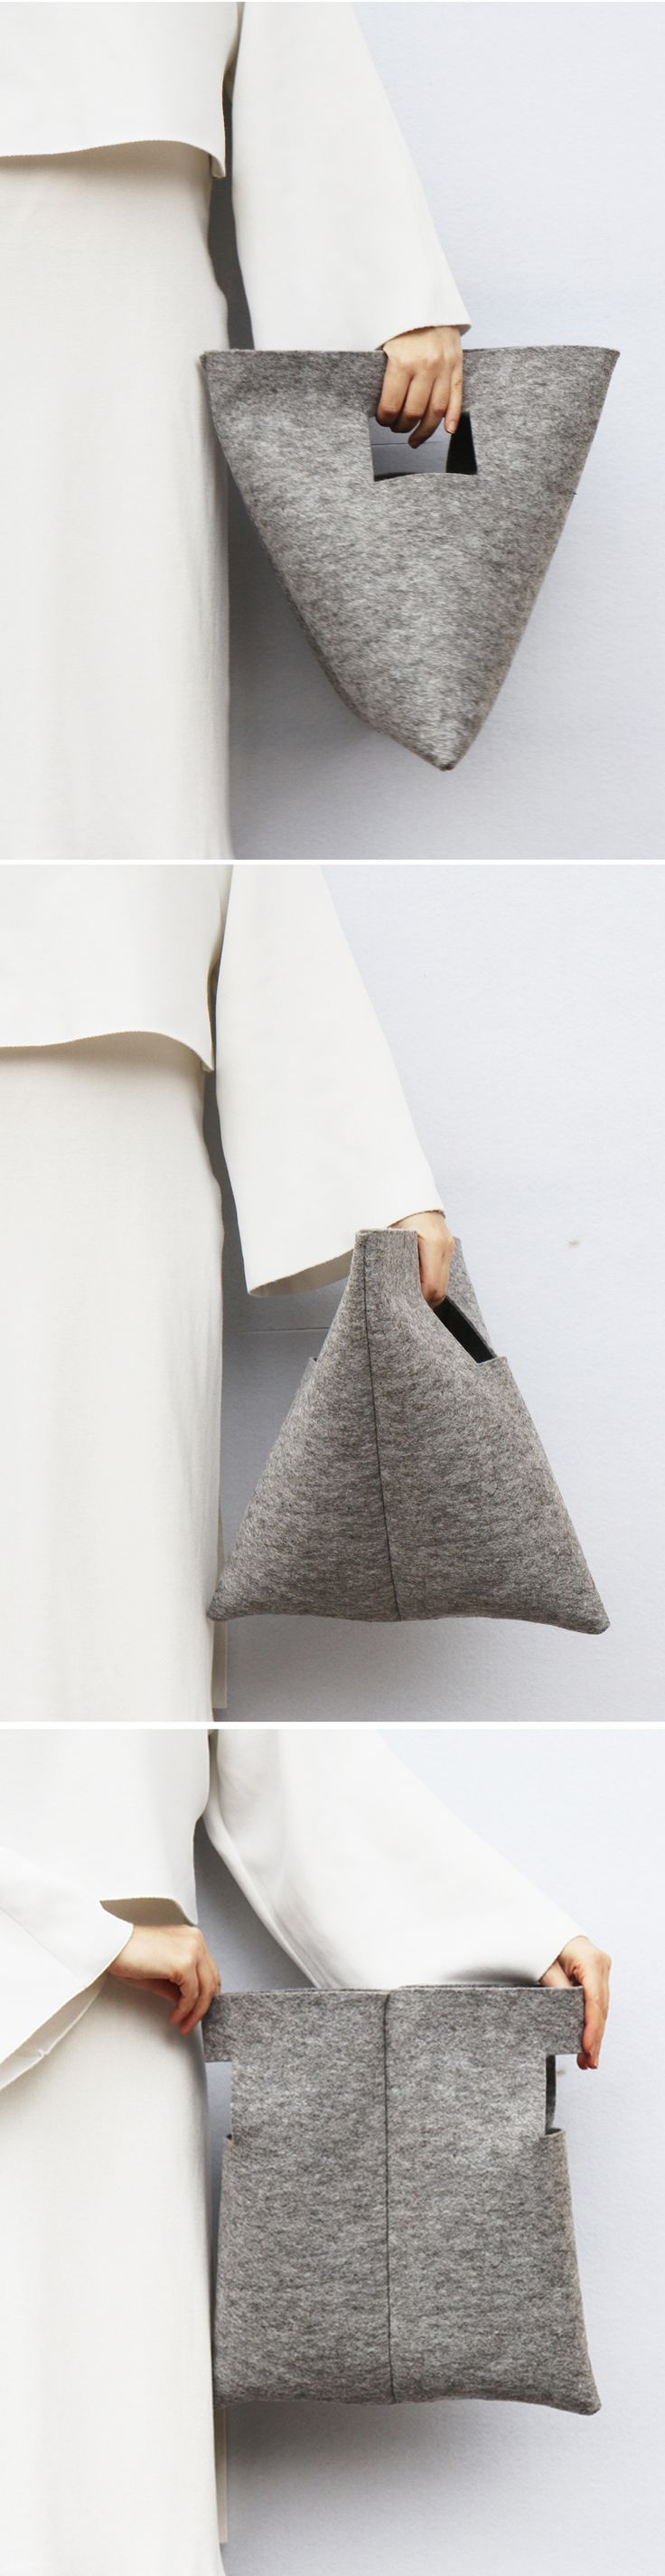 M Bag | by IF irinaflorea | minimalist | felt